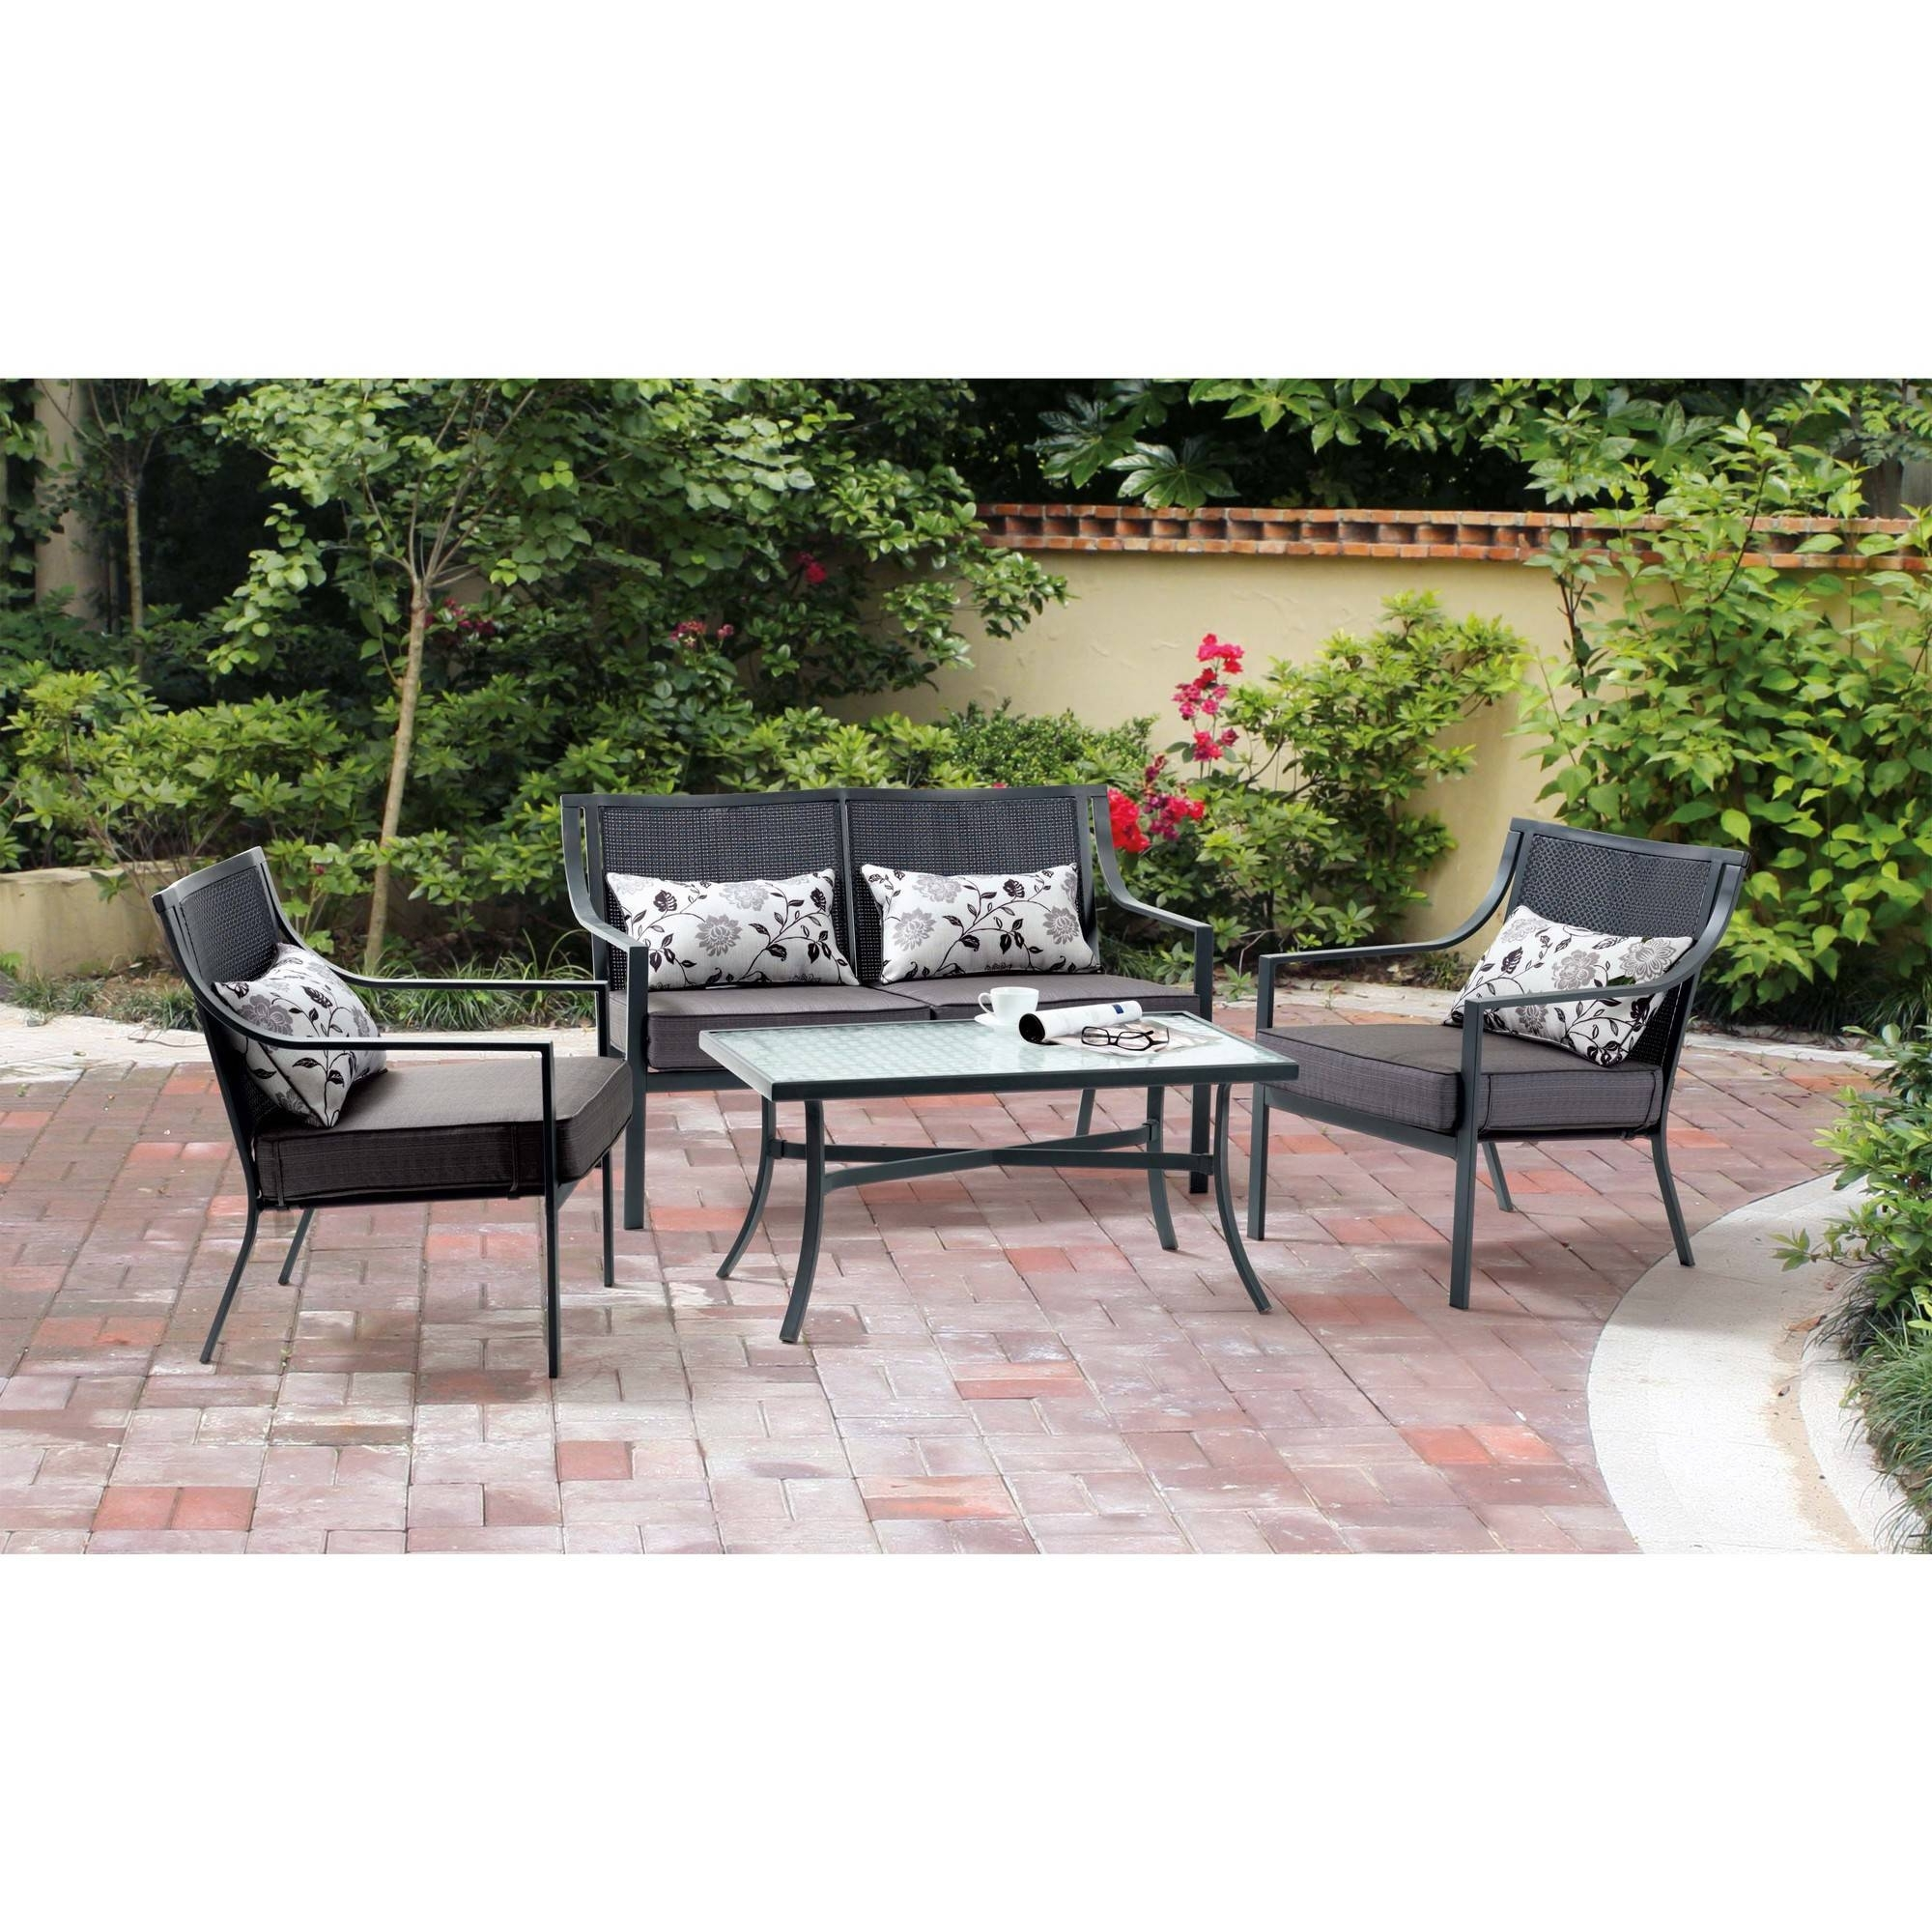 Trendy Patio Conversation Sets Without Cushions Within Patio Conversation Sets Without Cushions – Patio Ideas (View 2 of 15)